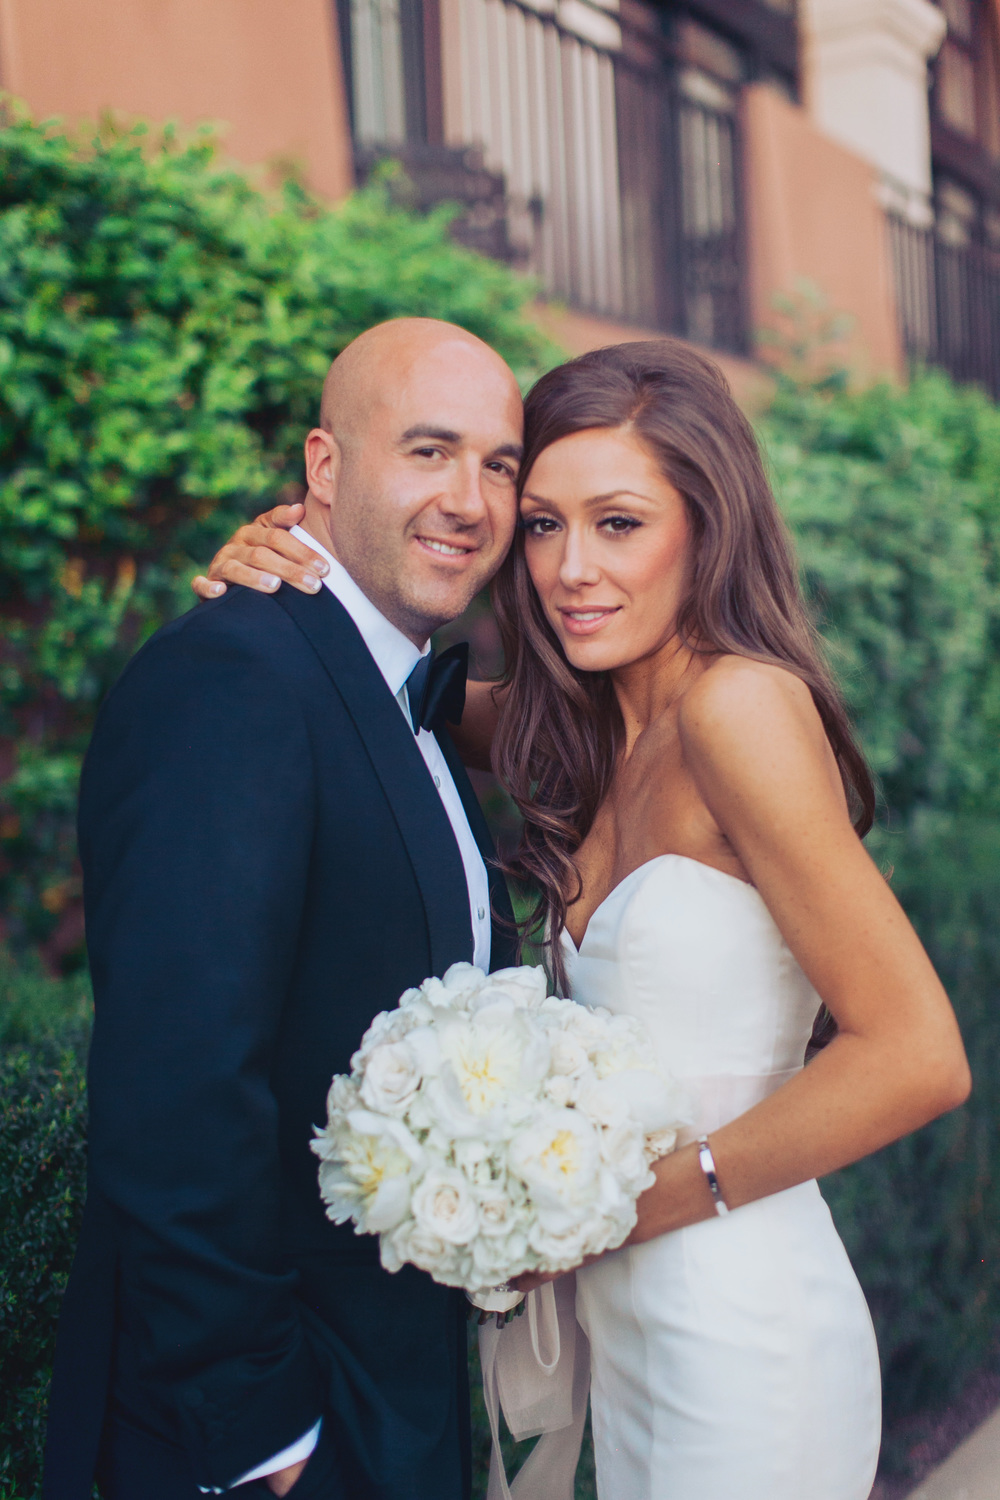 Formal Wedding Portrait.   Stephanie Di Lallo married   Justin Oliver at a water front   wedding at The Westin Lake Las Vegas.       Las Vegas Wedding Planner Andrea Eppolito  |  Wedding at Lake Las Vegas  | White and Blu  sh and Grey Wedding | Luxury Wedding Las Vegas